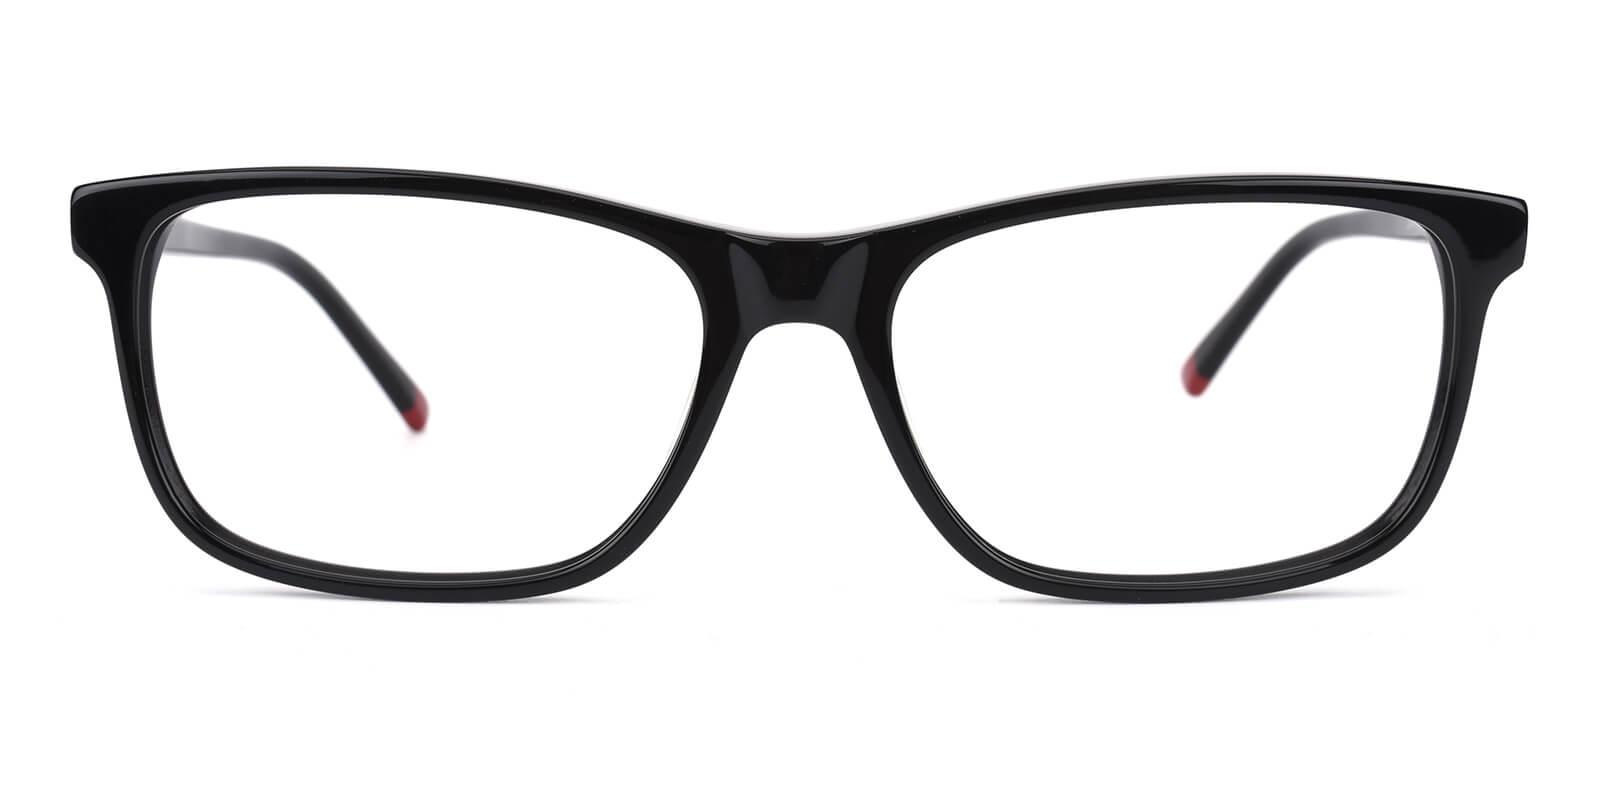 Chief-Black-Rectangle-Acetate-Eyeglasses-additional2